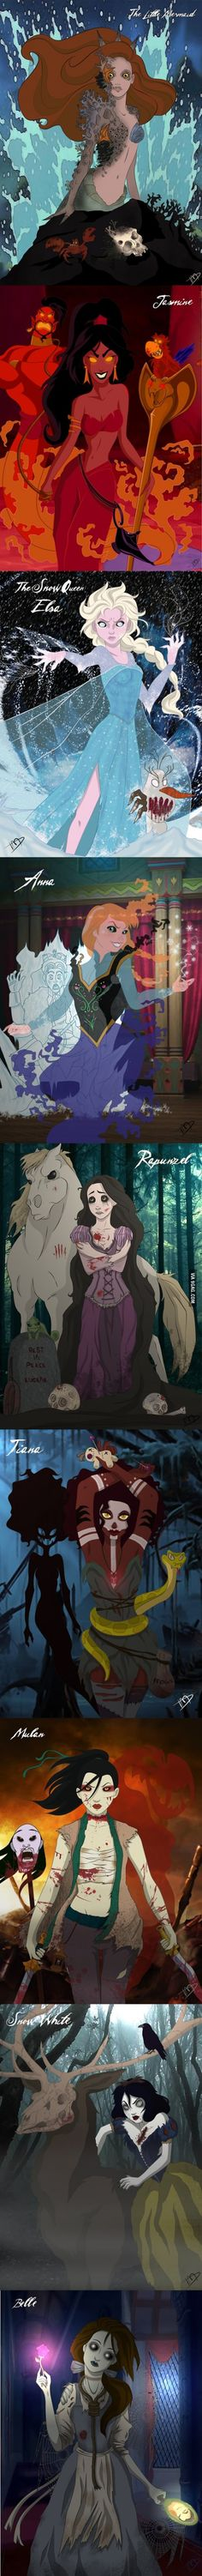 Evil Disney Princess. These are SO CREEPY!